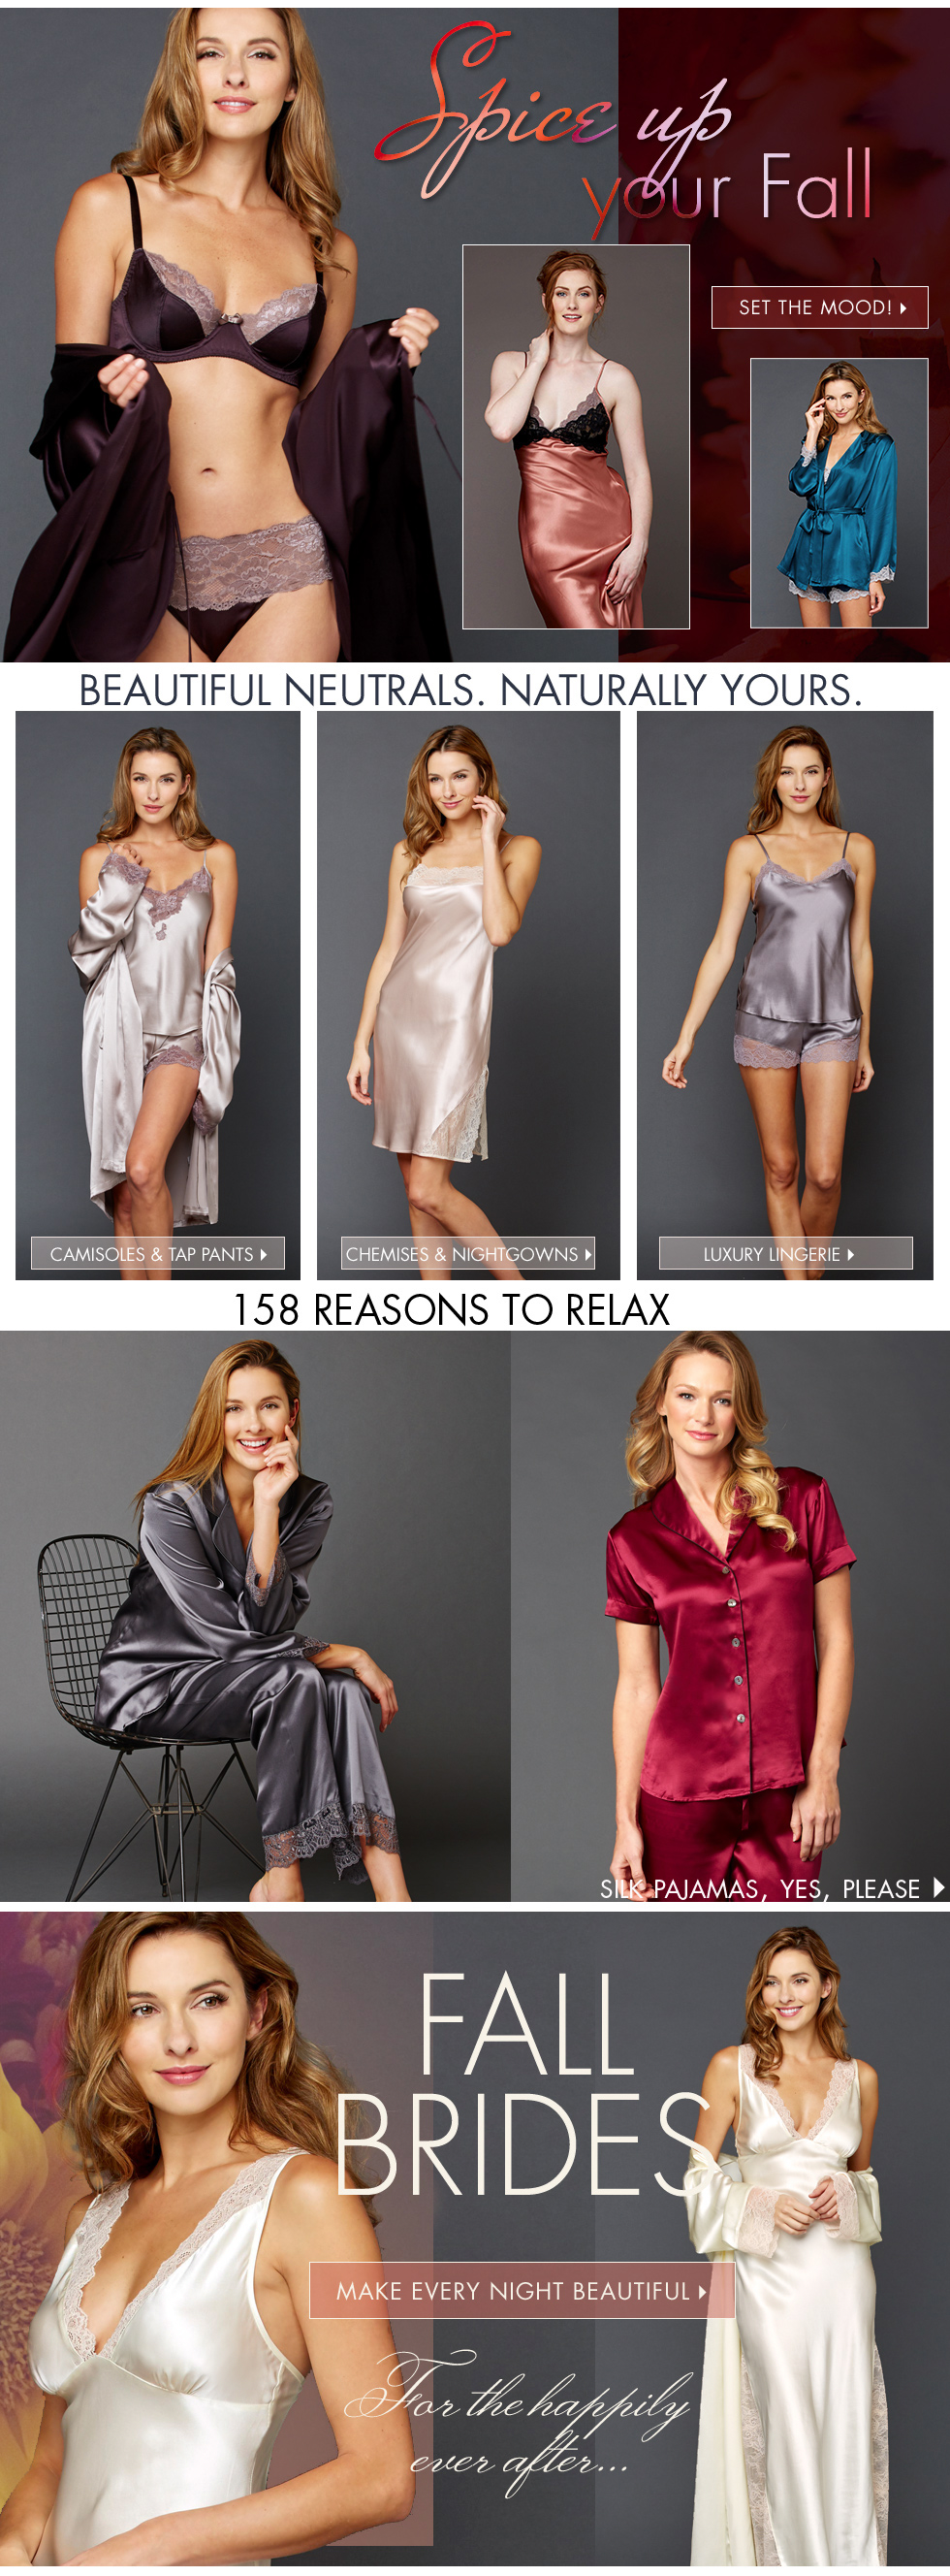 make fall beautiful with luxury lingerie and sleepwear